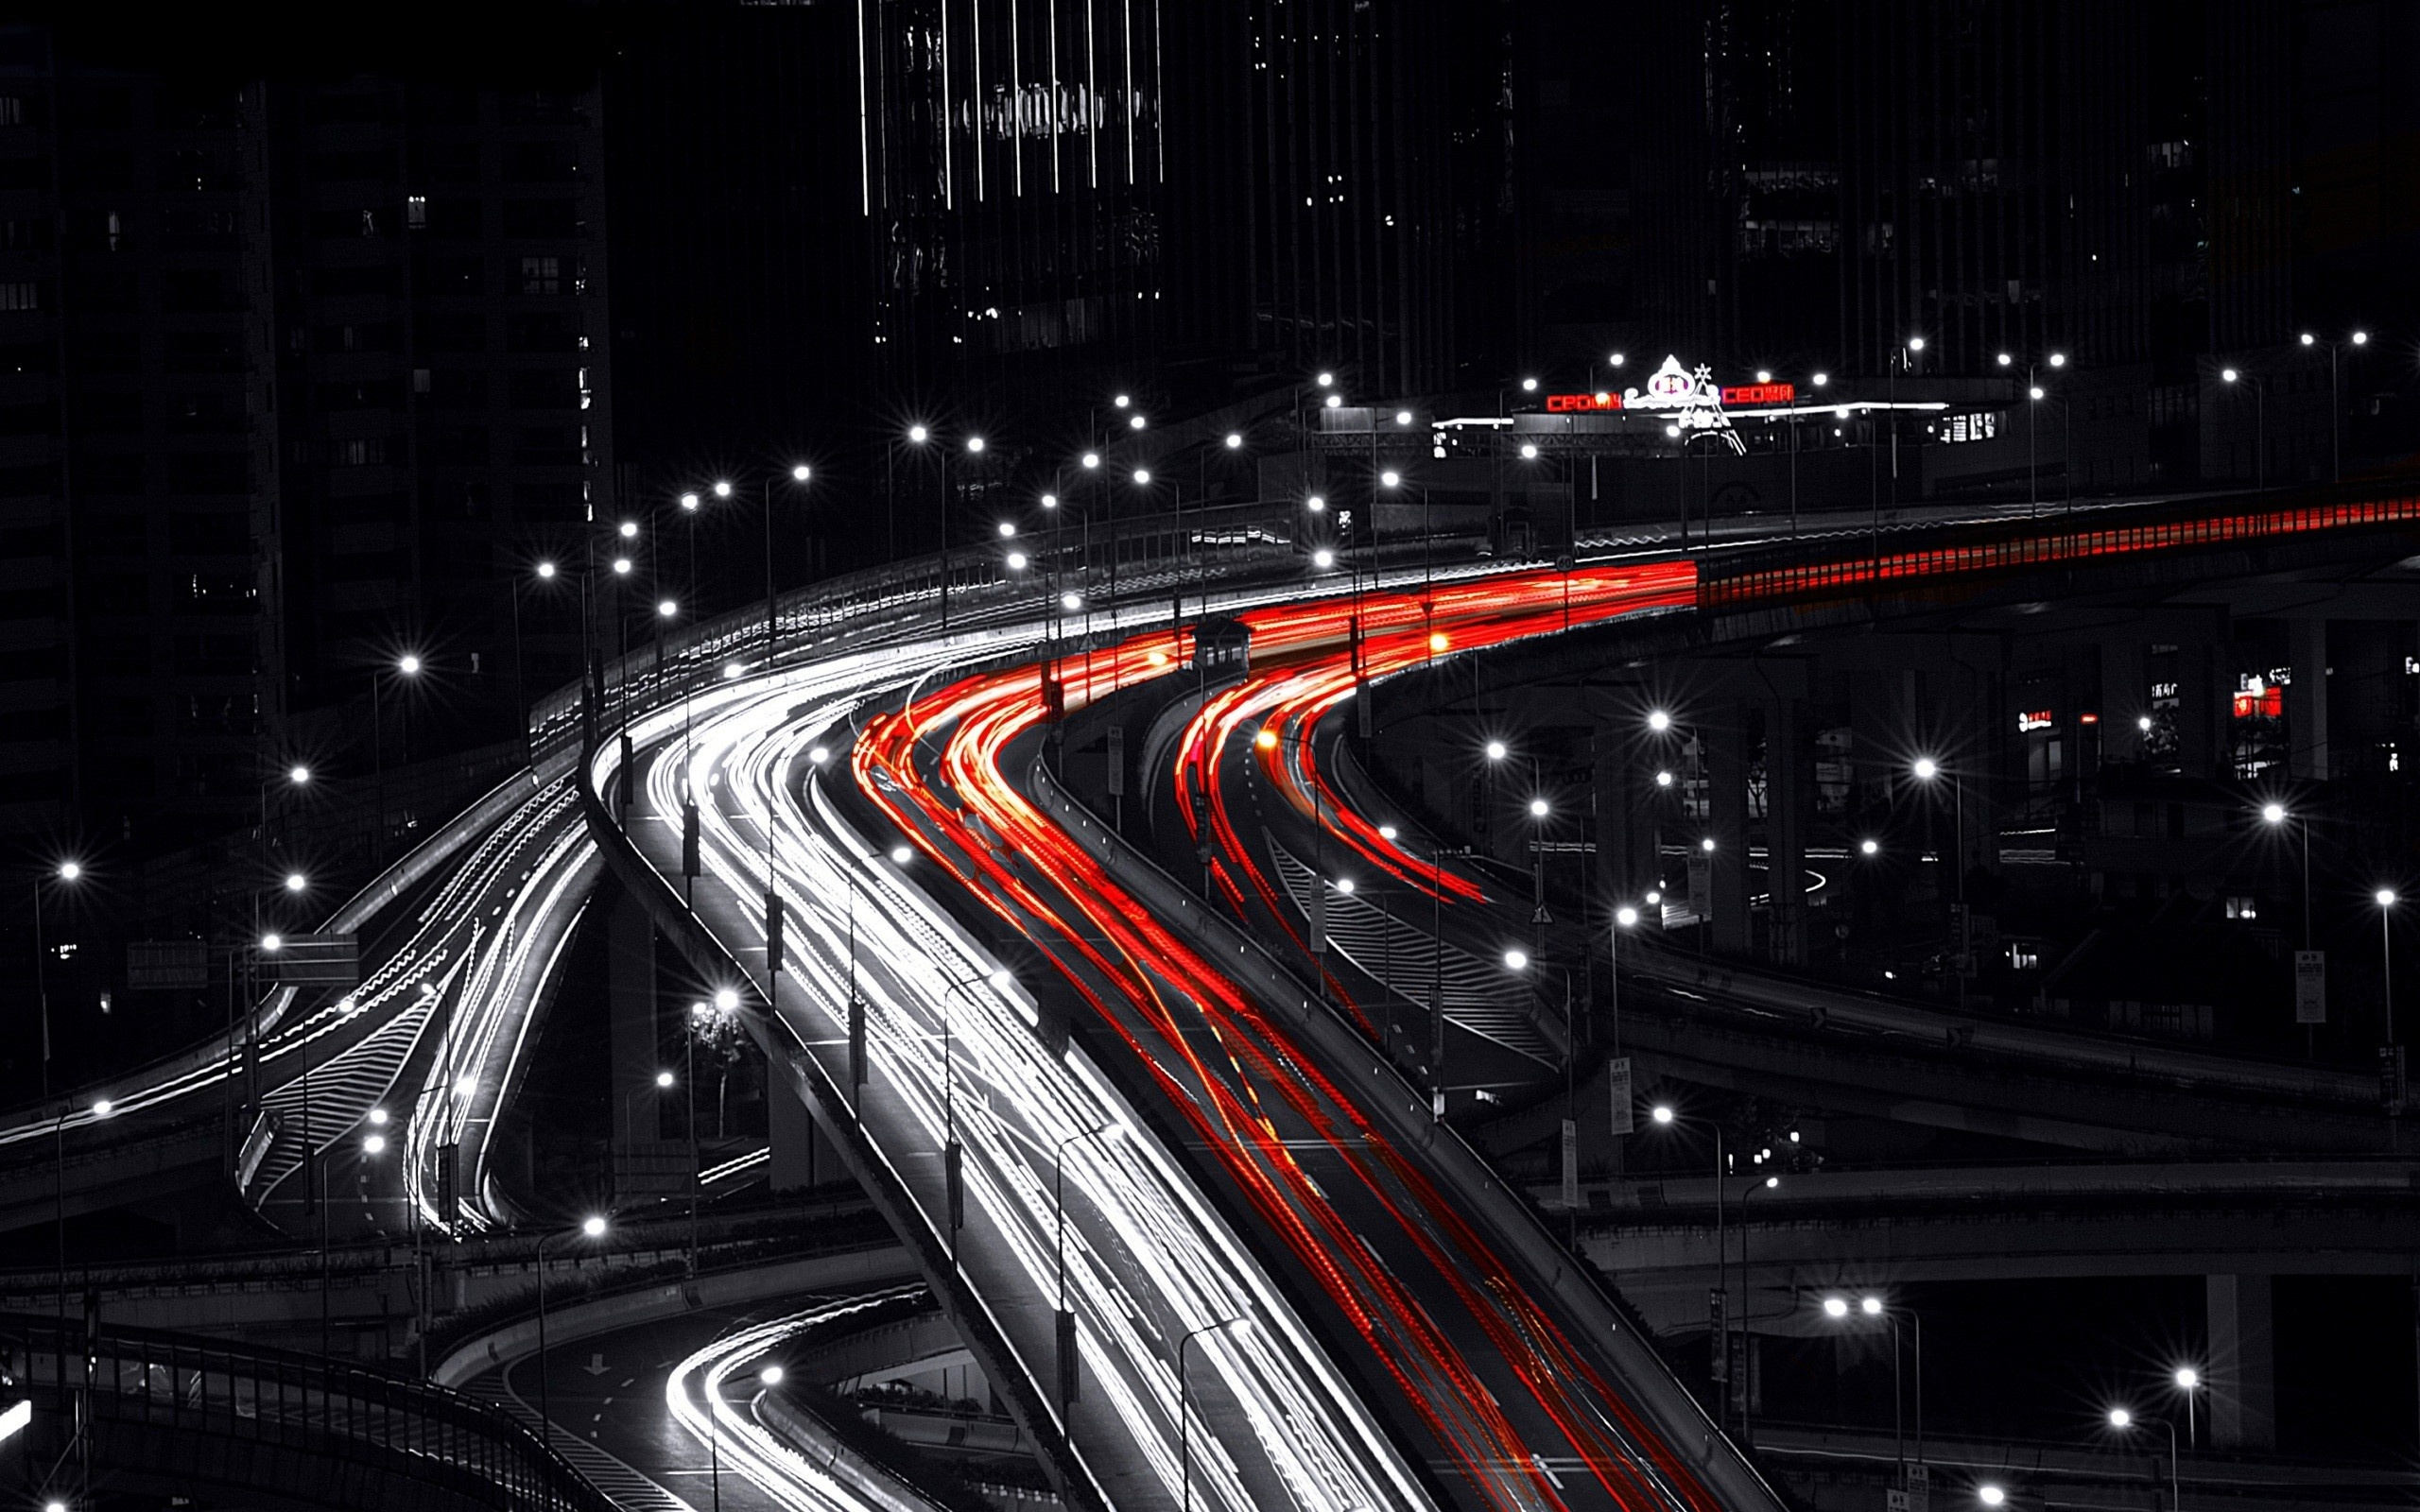 time lapse hd wallpaper background image 2560x1600 id 368162